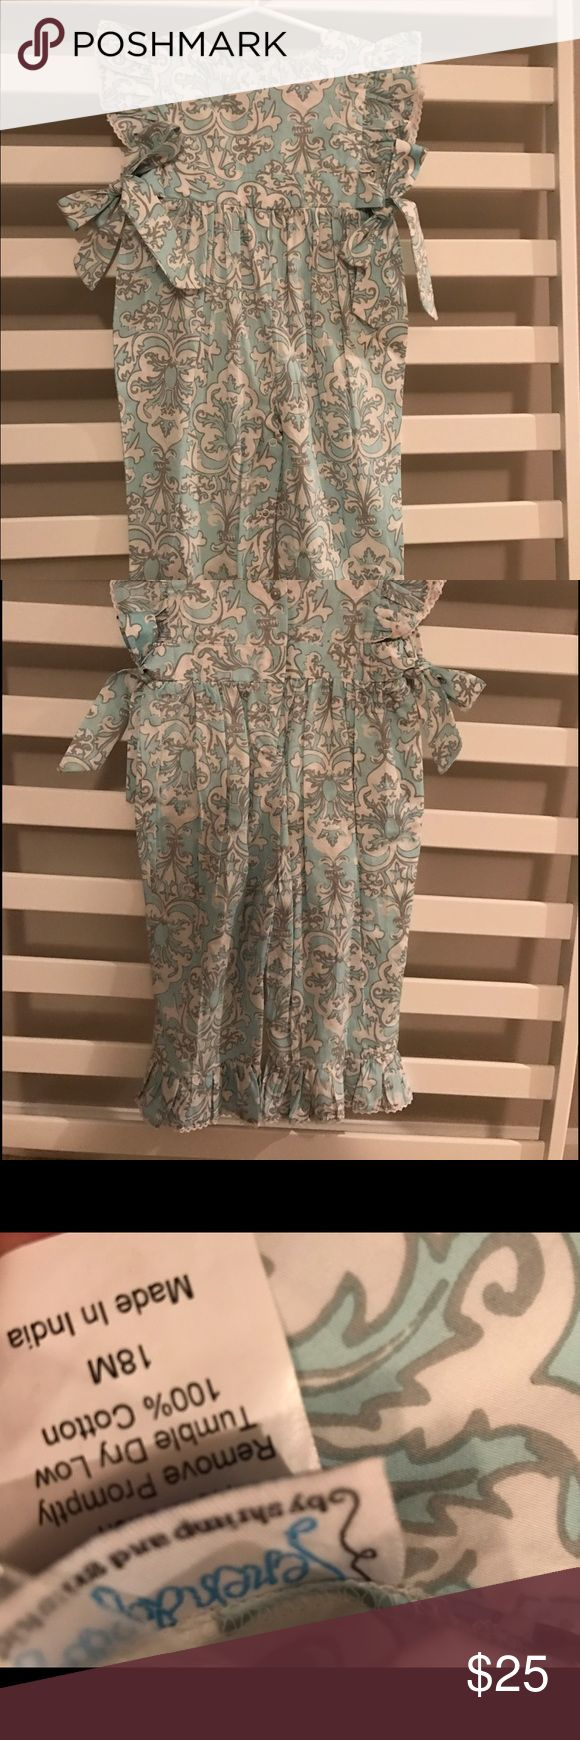 Shrimp and grits kids romper Serendipity by Shrimp and grits kids, romper with bows on the side, ruffle sleeves and ruffles and the bottom. Shrimp and Grits Kids One Pieces